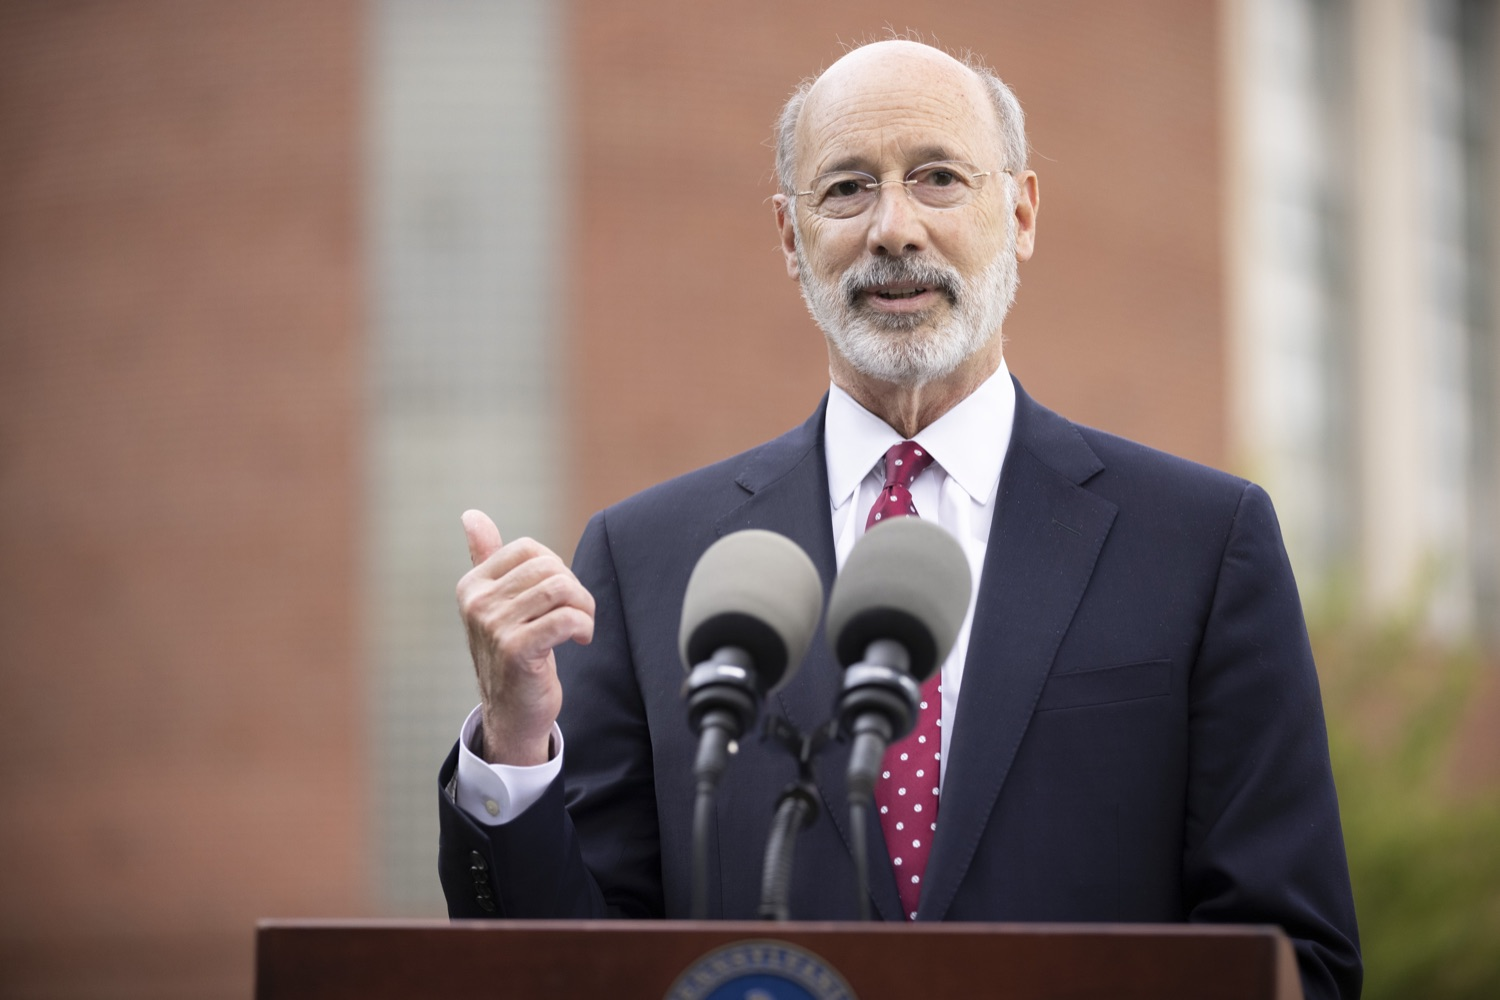 """<a href=""""https://filesource.wostreaming.net/commonwealthofpa/photo/18796_gov_charterSchool_dz_002.jpg"""" target=""""_blank"""">⇣Download Photo<br></a>Pennsylvania Governor Tom Wolf speaking with the press.  With overwhelming support among school districts for his charter school accountability plan, Governor Tom Wolf visited J.P. McCaskey High School in Lancaster today to discuss his bipartisan proposal that saves an estimated $395 million a year. Lancaster, PA  June 01, 2021"""